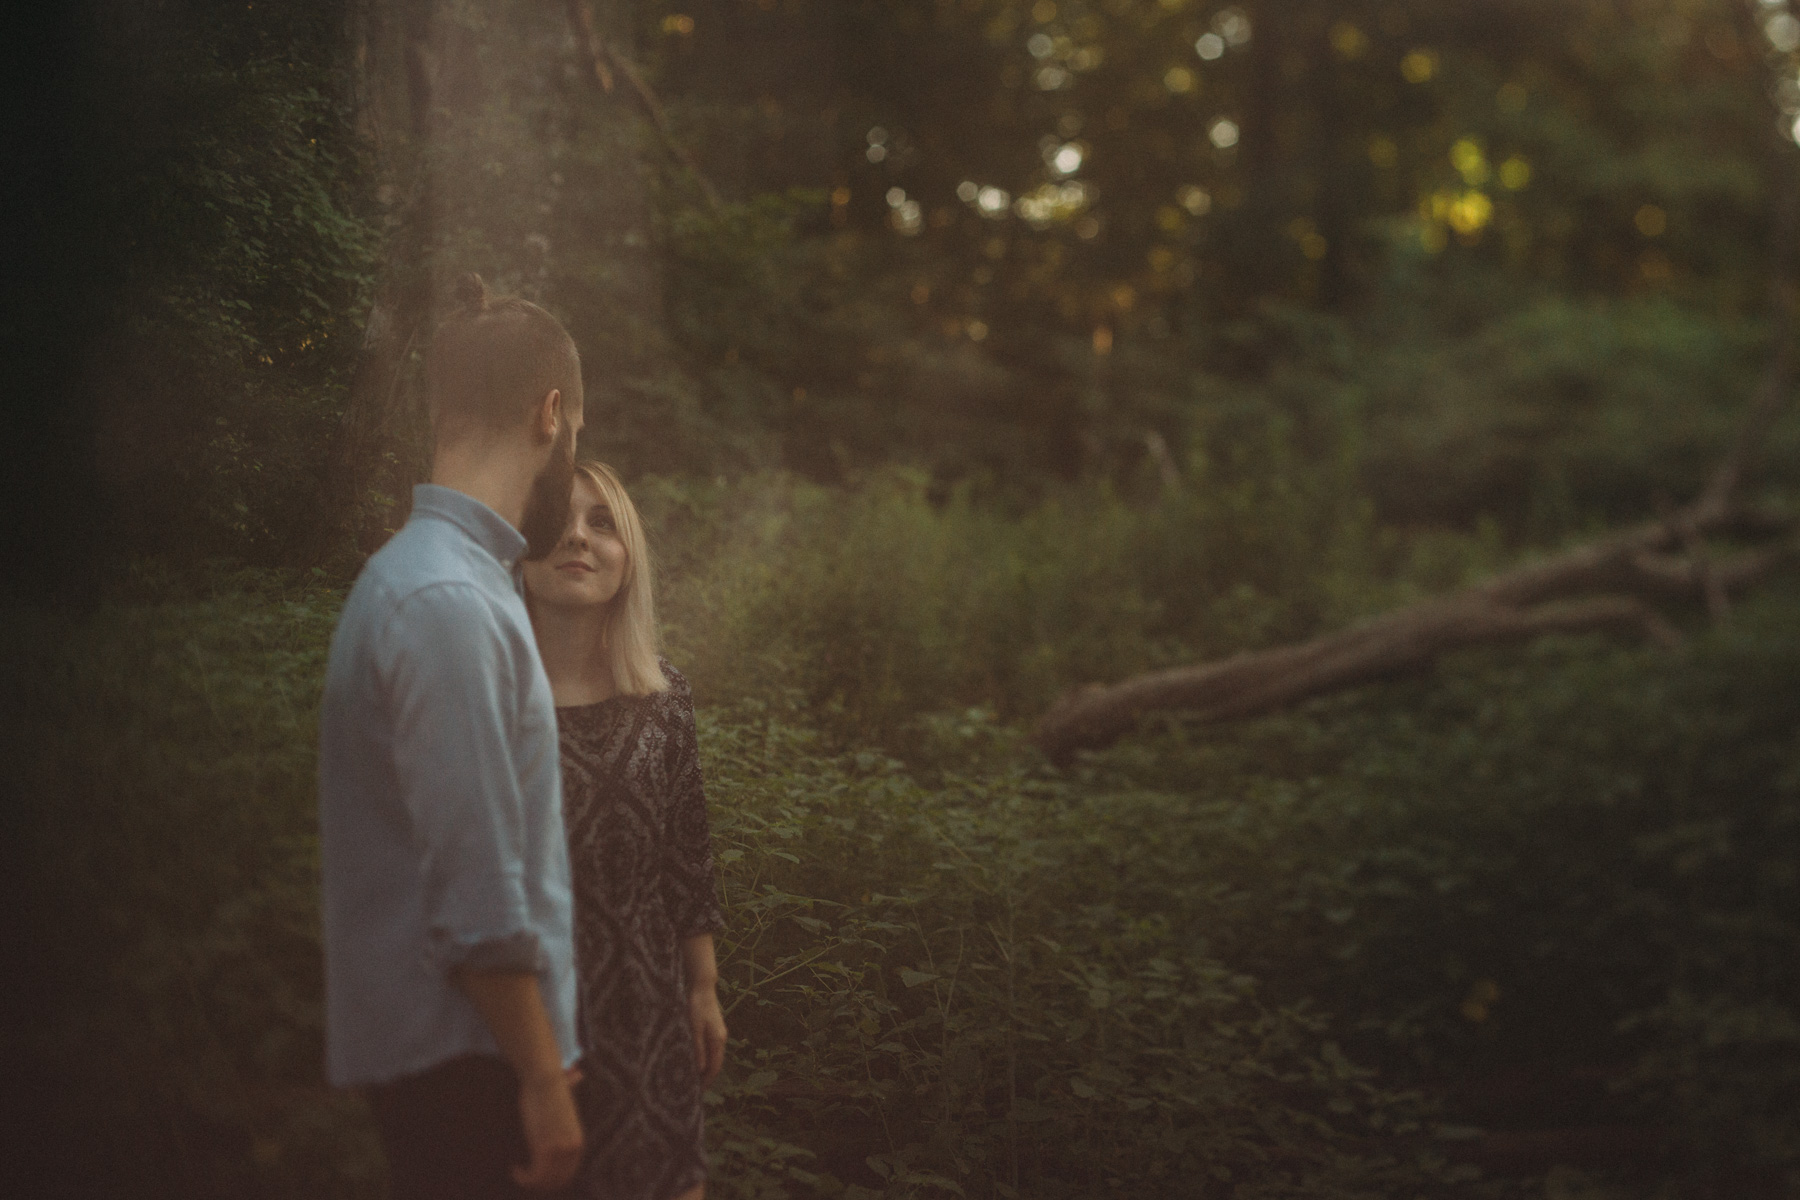 adventure-engagement-photography-by-sam-wong-of-artanis-collective_015